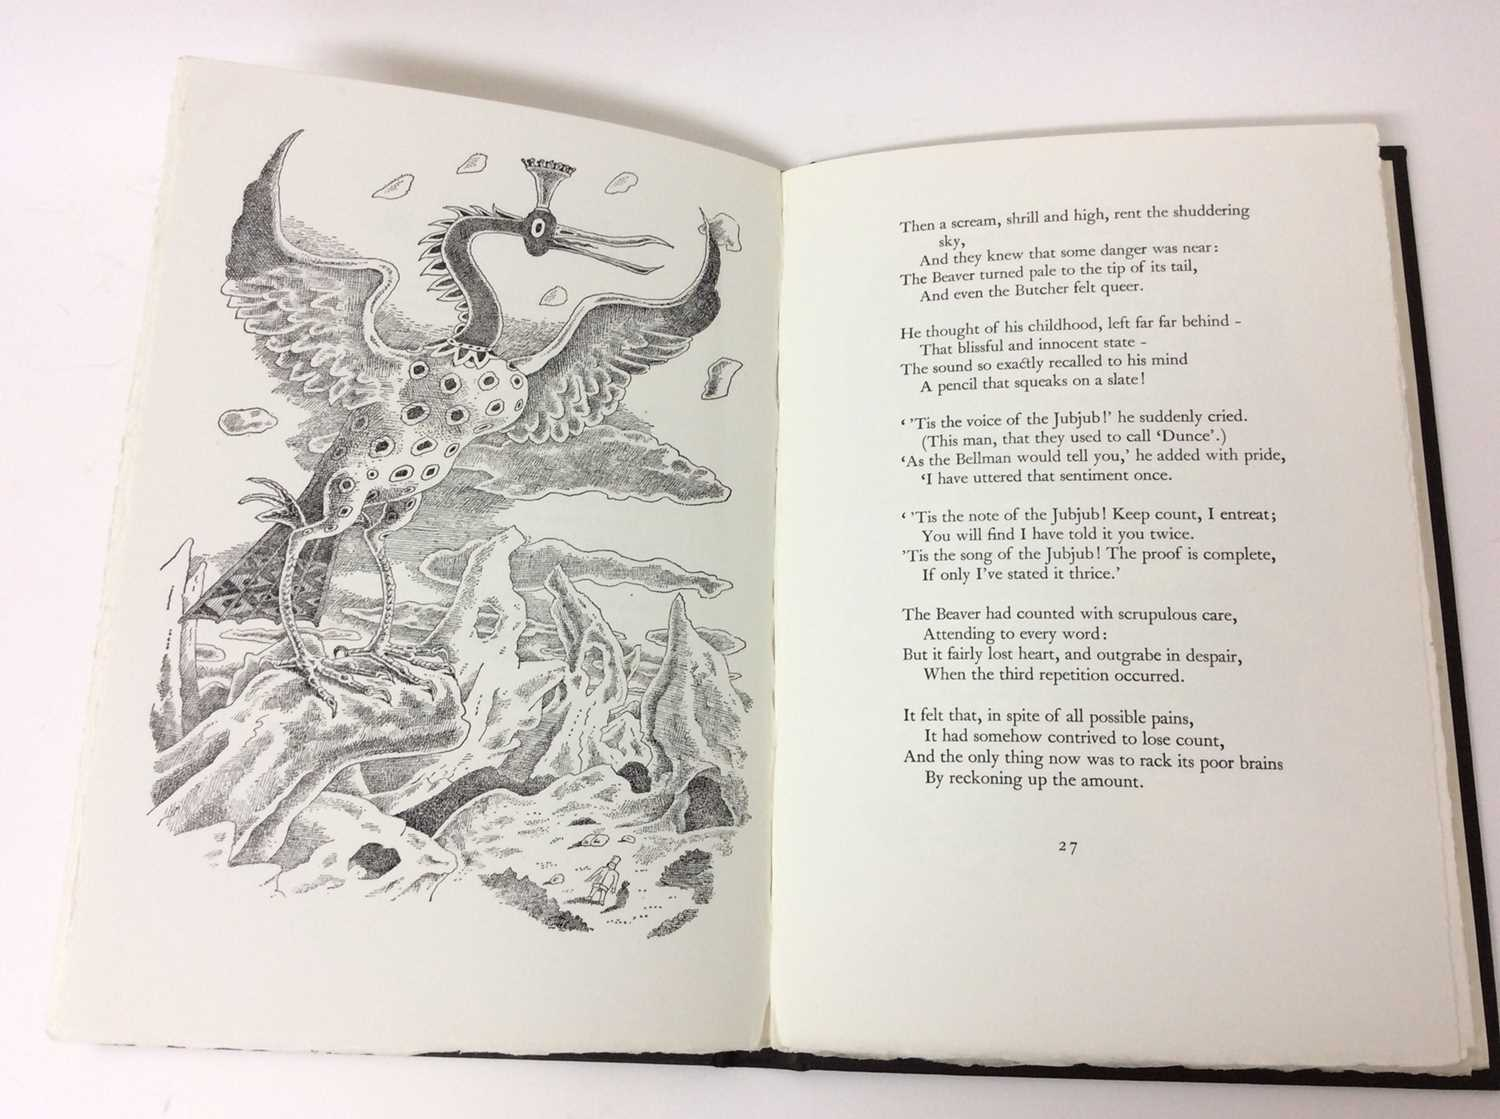 Lewis Carroll - The Hunting of the Snark, Whittington Press 1975, 404/750 - Image 8 of 10